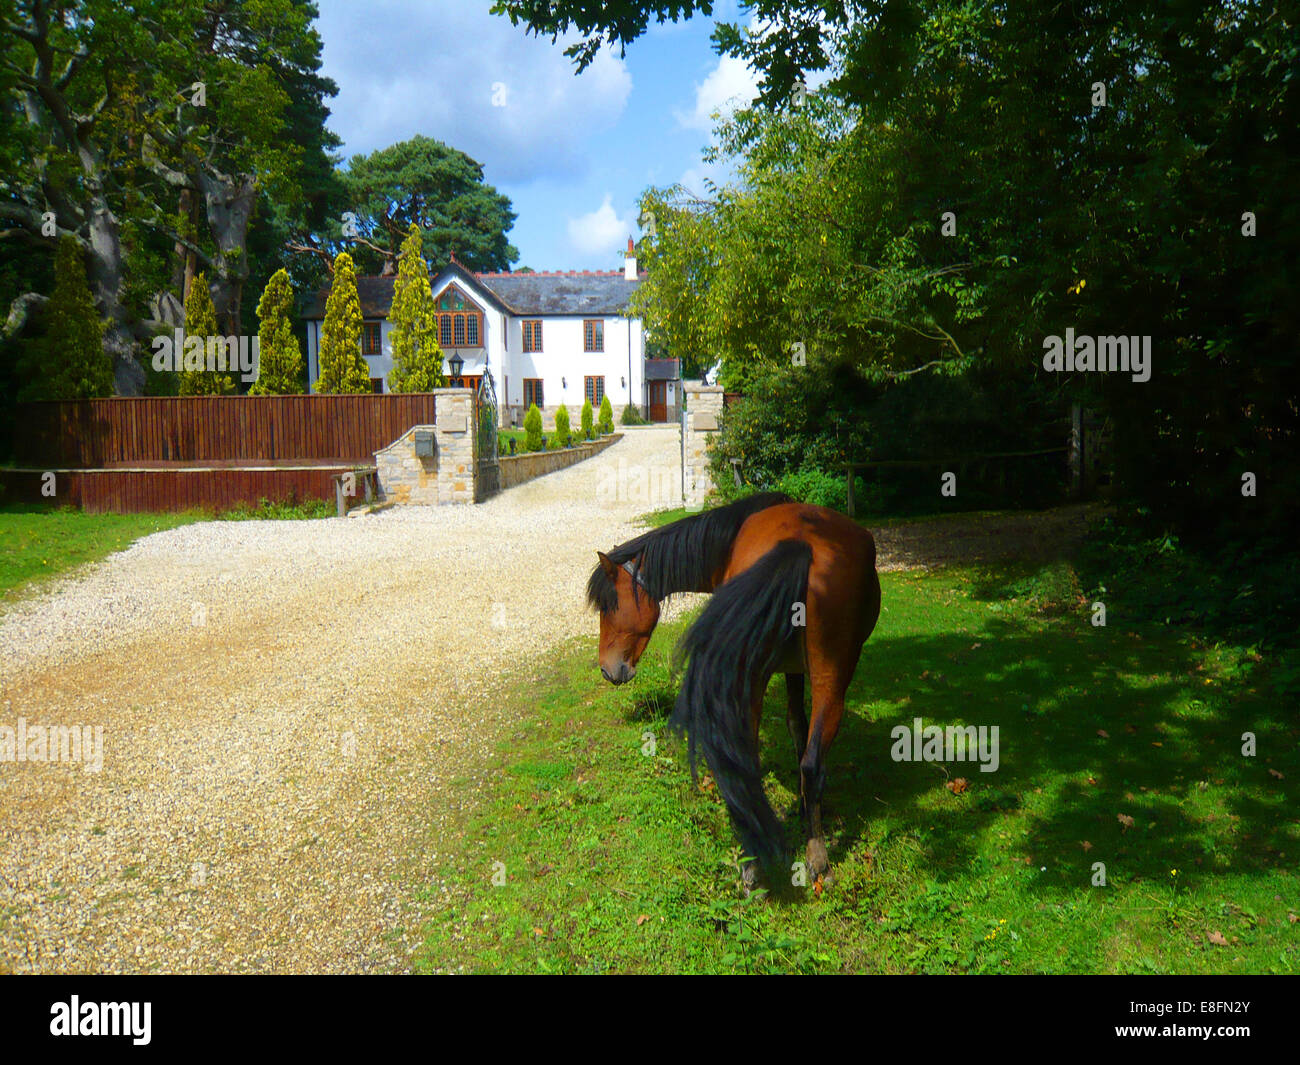 UK, Hampshire, New Forest, Pony outside house - Stock Image